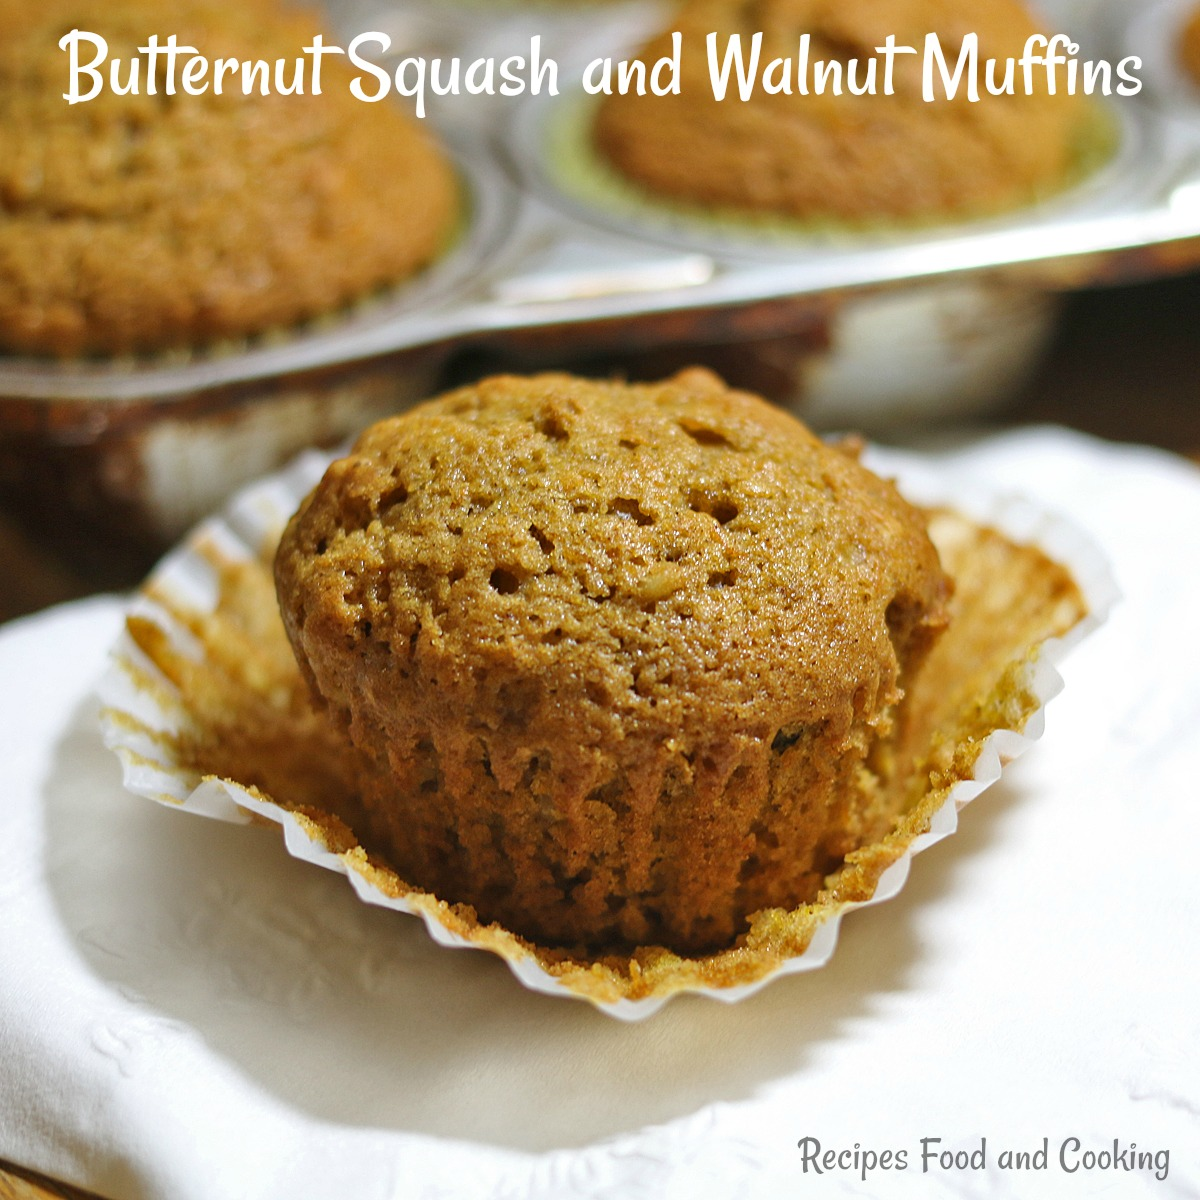 Butternut Squash and Walnut Muffins